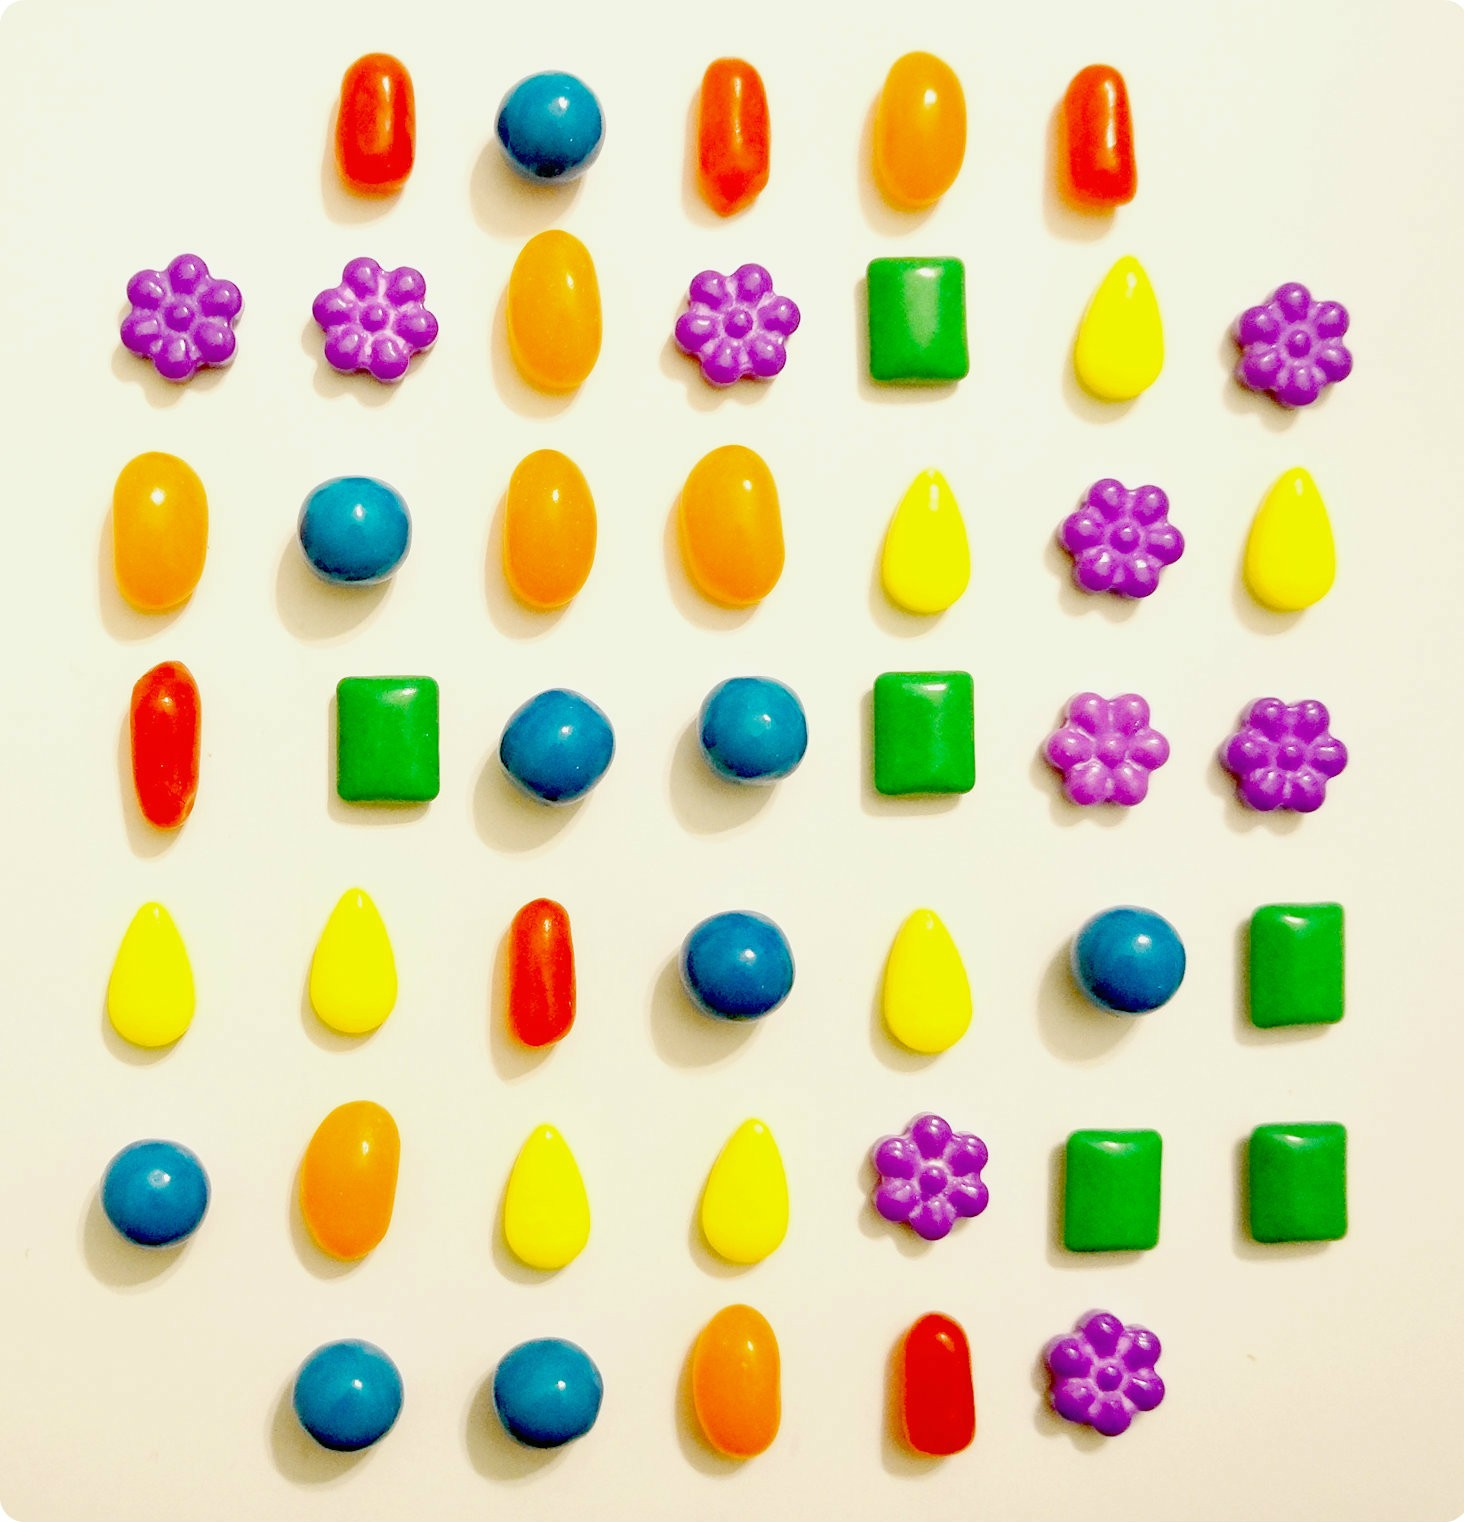 candy crush saga layout candy from bulk barn real life candy crush 19